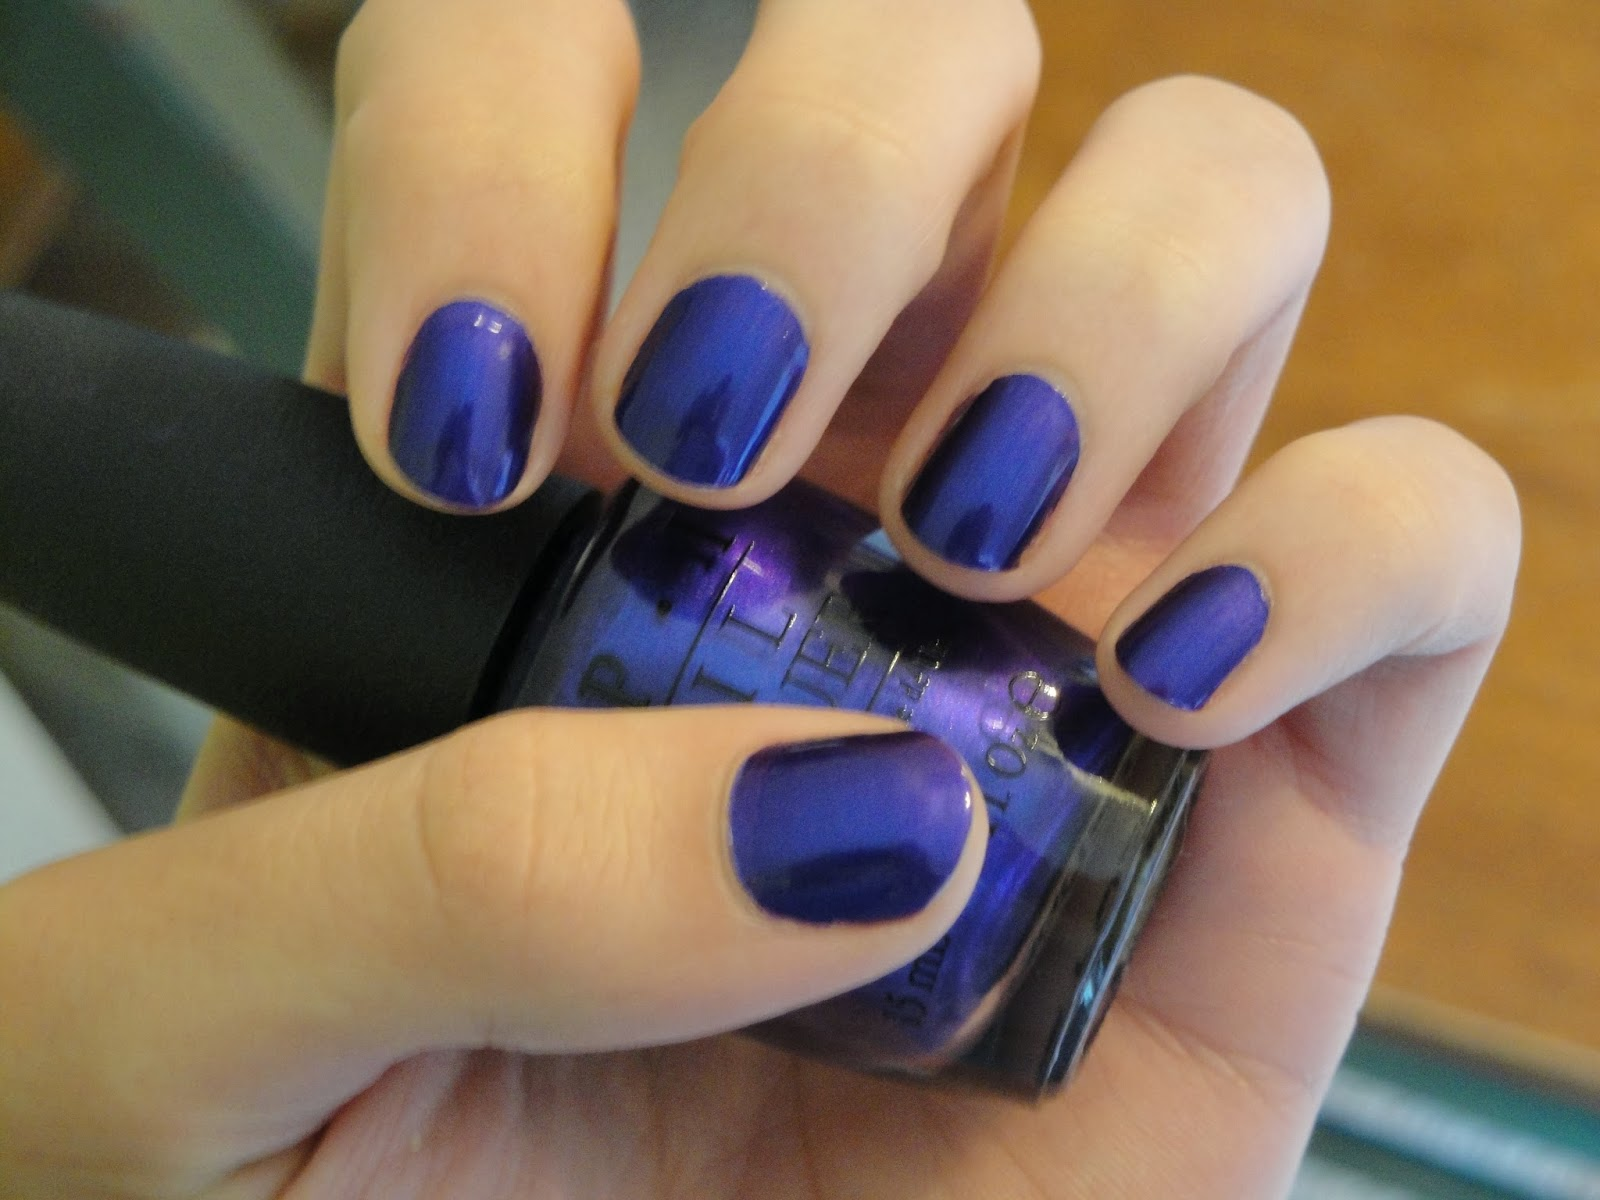 I Bought Tomorrow Never S By Opi Last Year As An Impulse And Expected That It Would Become One Of My Favorite Nail Polishes